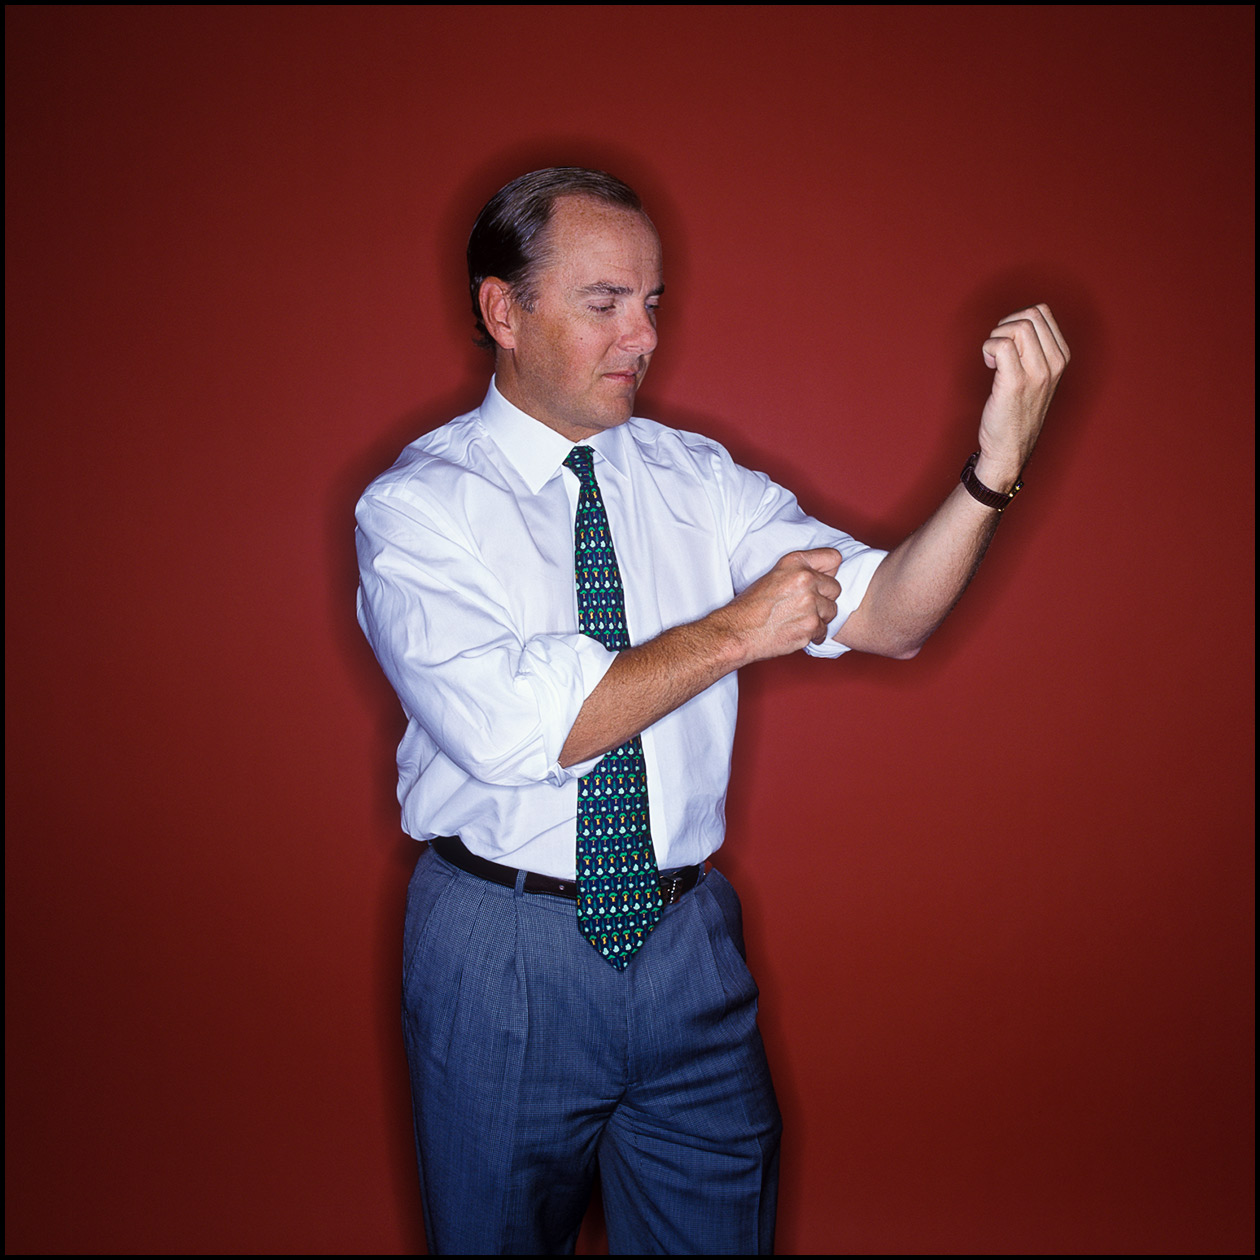 Portrait of Jeff Skilling, former Enron CEO, rolling up his sleeves in front of a red wall.